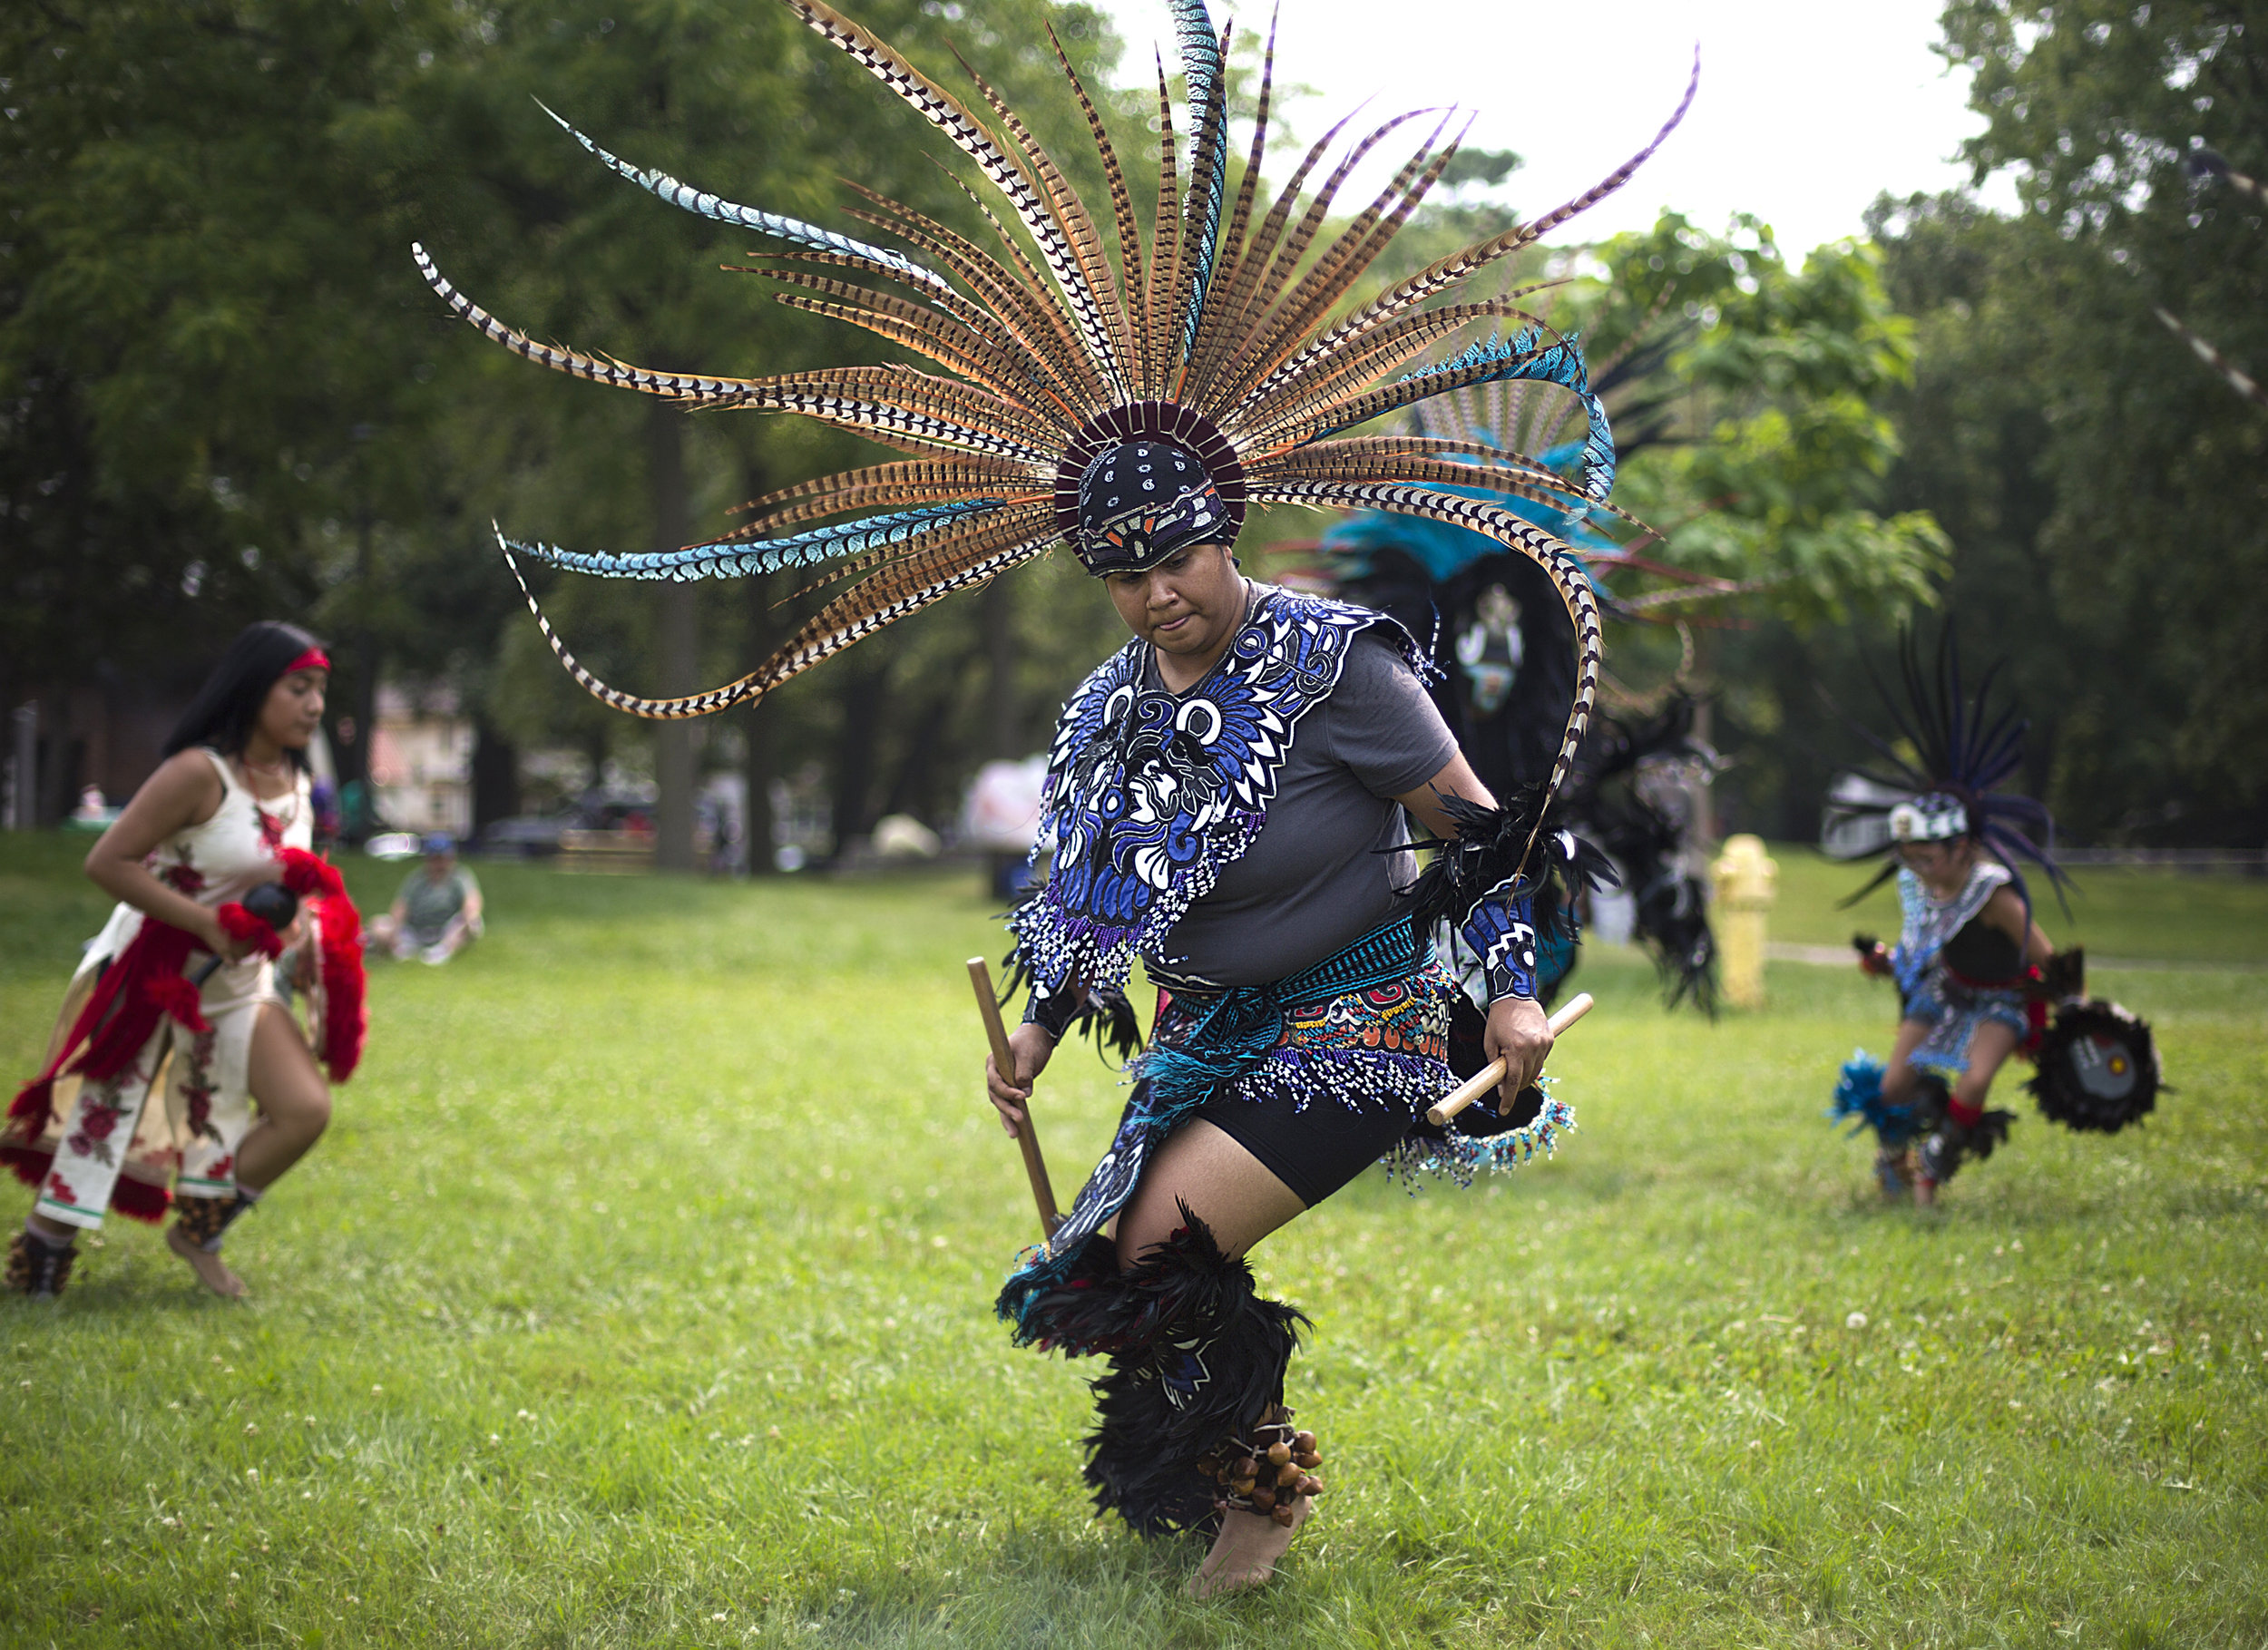 The Aztec dance troupe Kalpulli Ketzal Coatlicue, including Rolis Marin, center, performed Aug. 11 at the Annual Festival of Fathers and Family at North Commons Park.